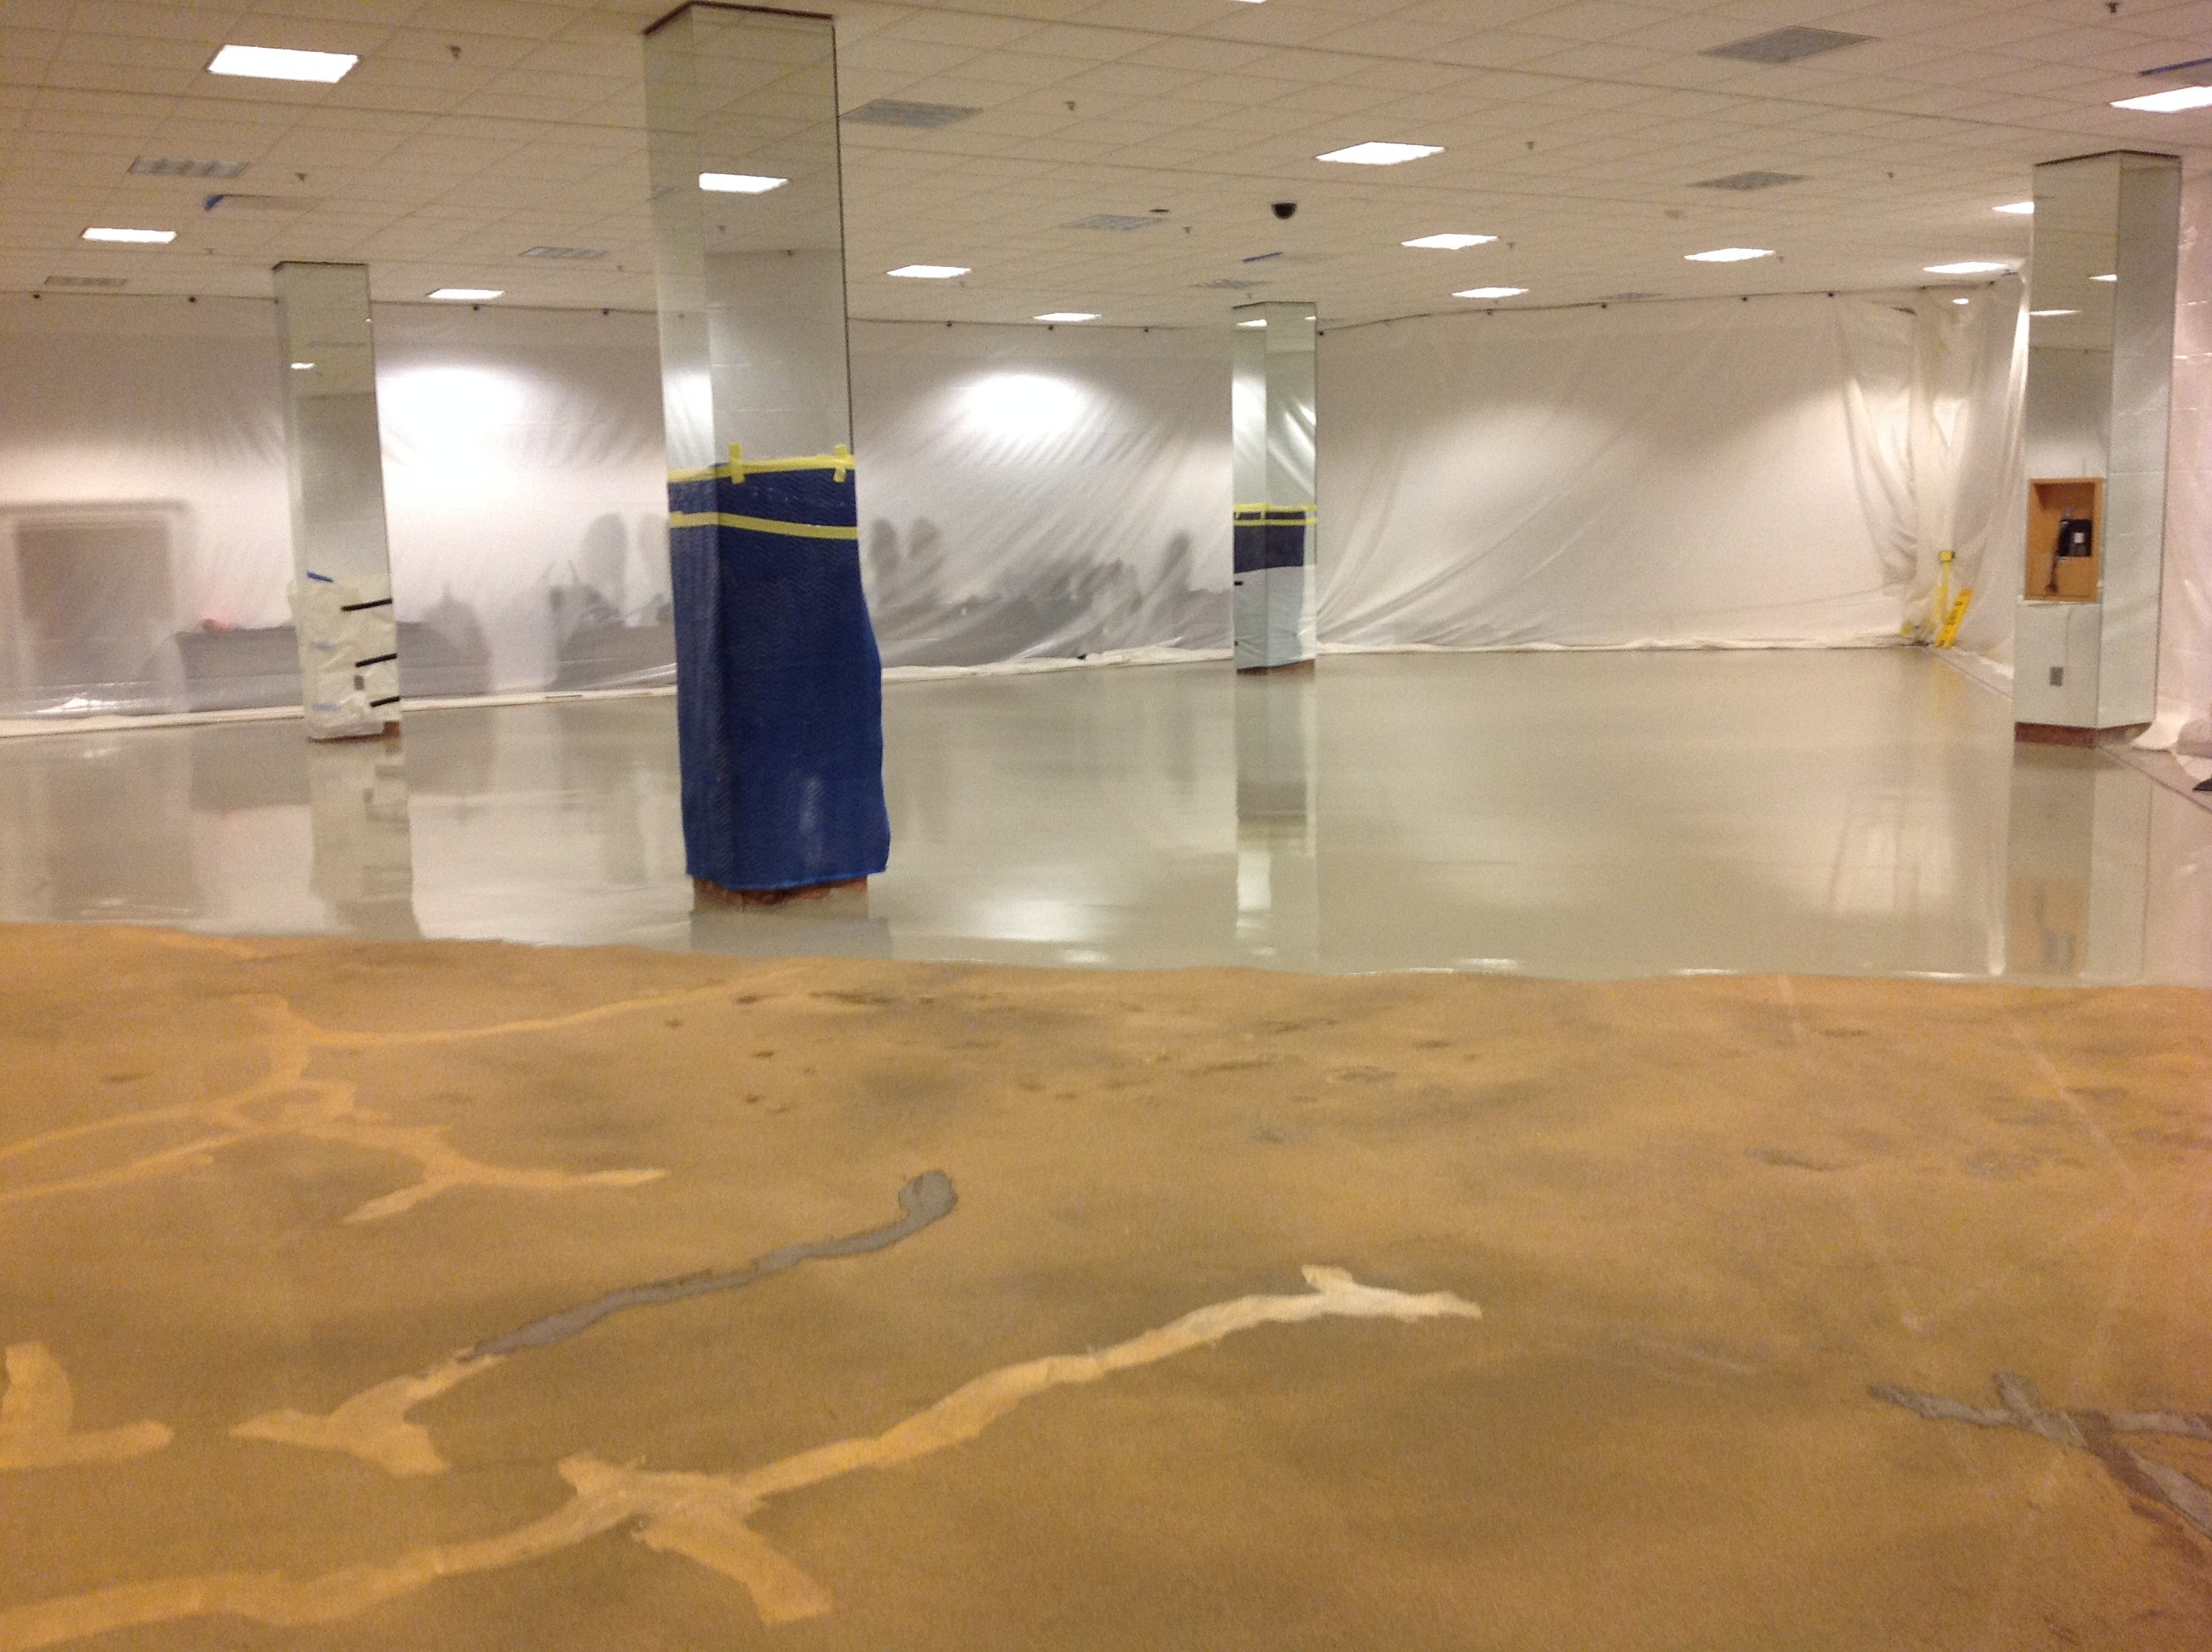 Broward County Concrete Underlayment Solutions-concrete underlayment services, concrete overpayment, polishing, grinding, Stucco installation-13